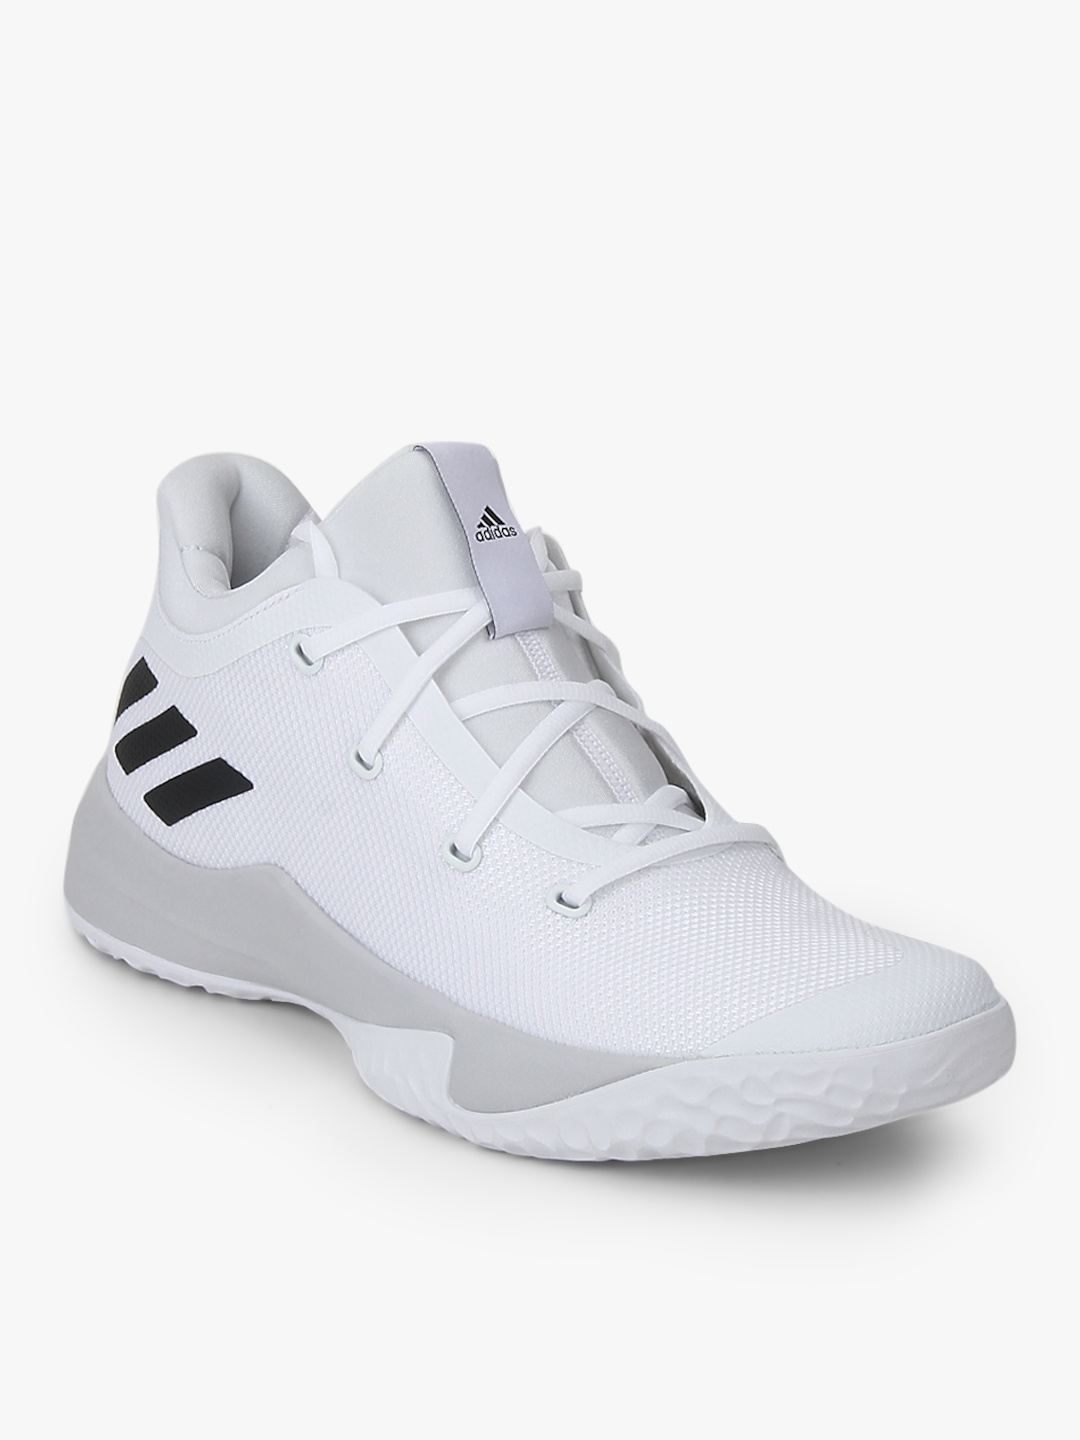 Buy Rise Up 2 White Basketball Shoes - Sports Shoes for Men 7634597 ... accf75c03